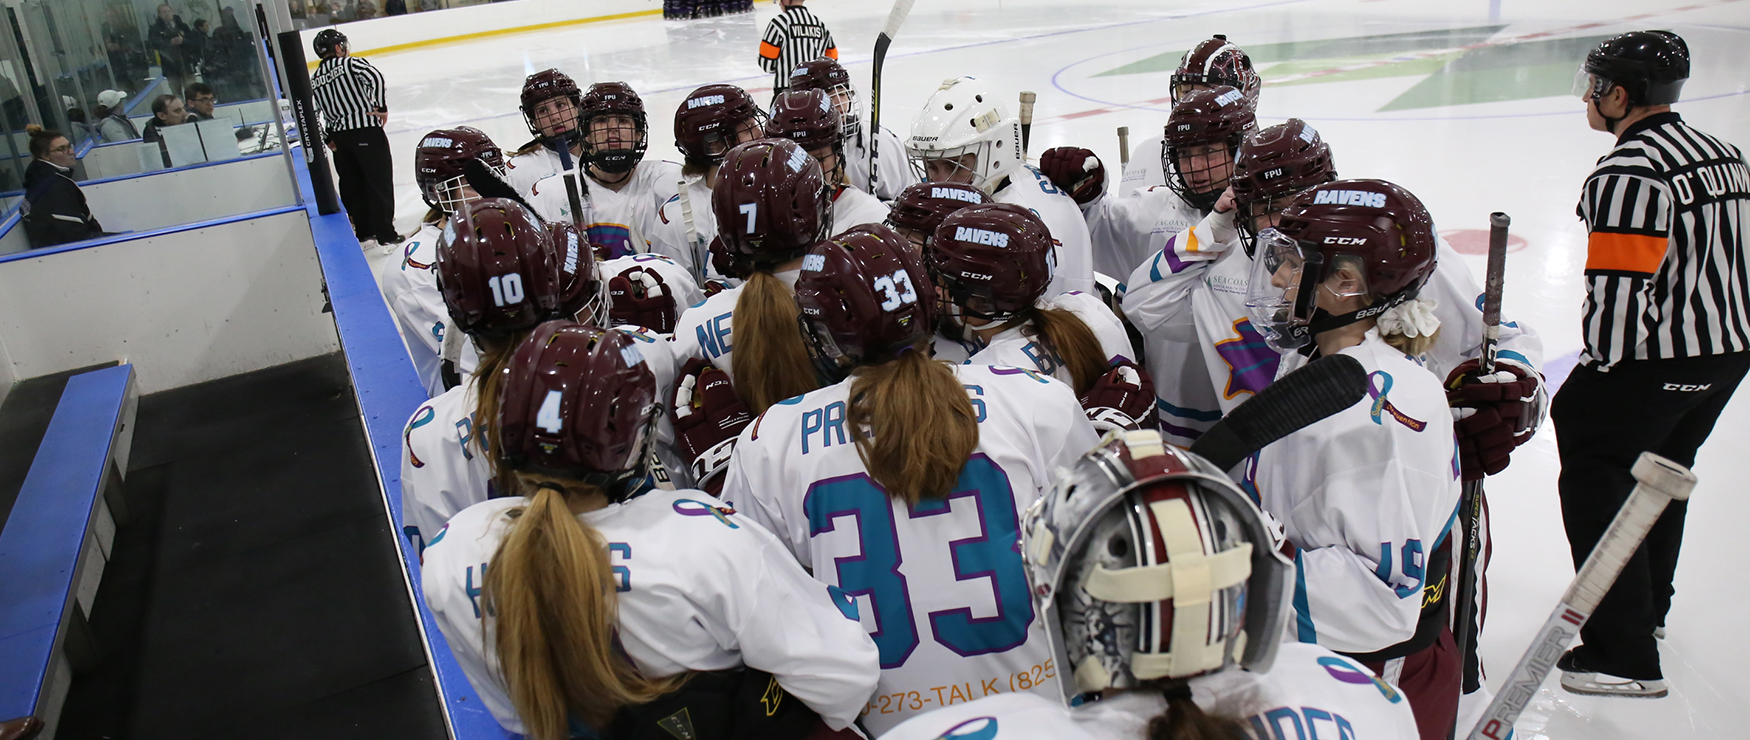 Game Gets Away in Third, as Women's Ice Hockey Falls to Morrisville State, 6-3